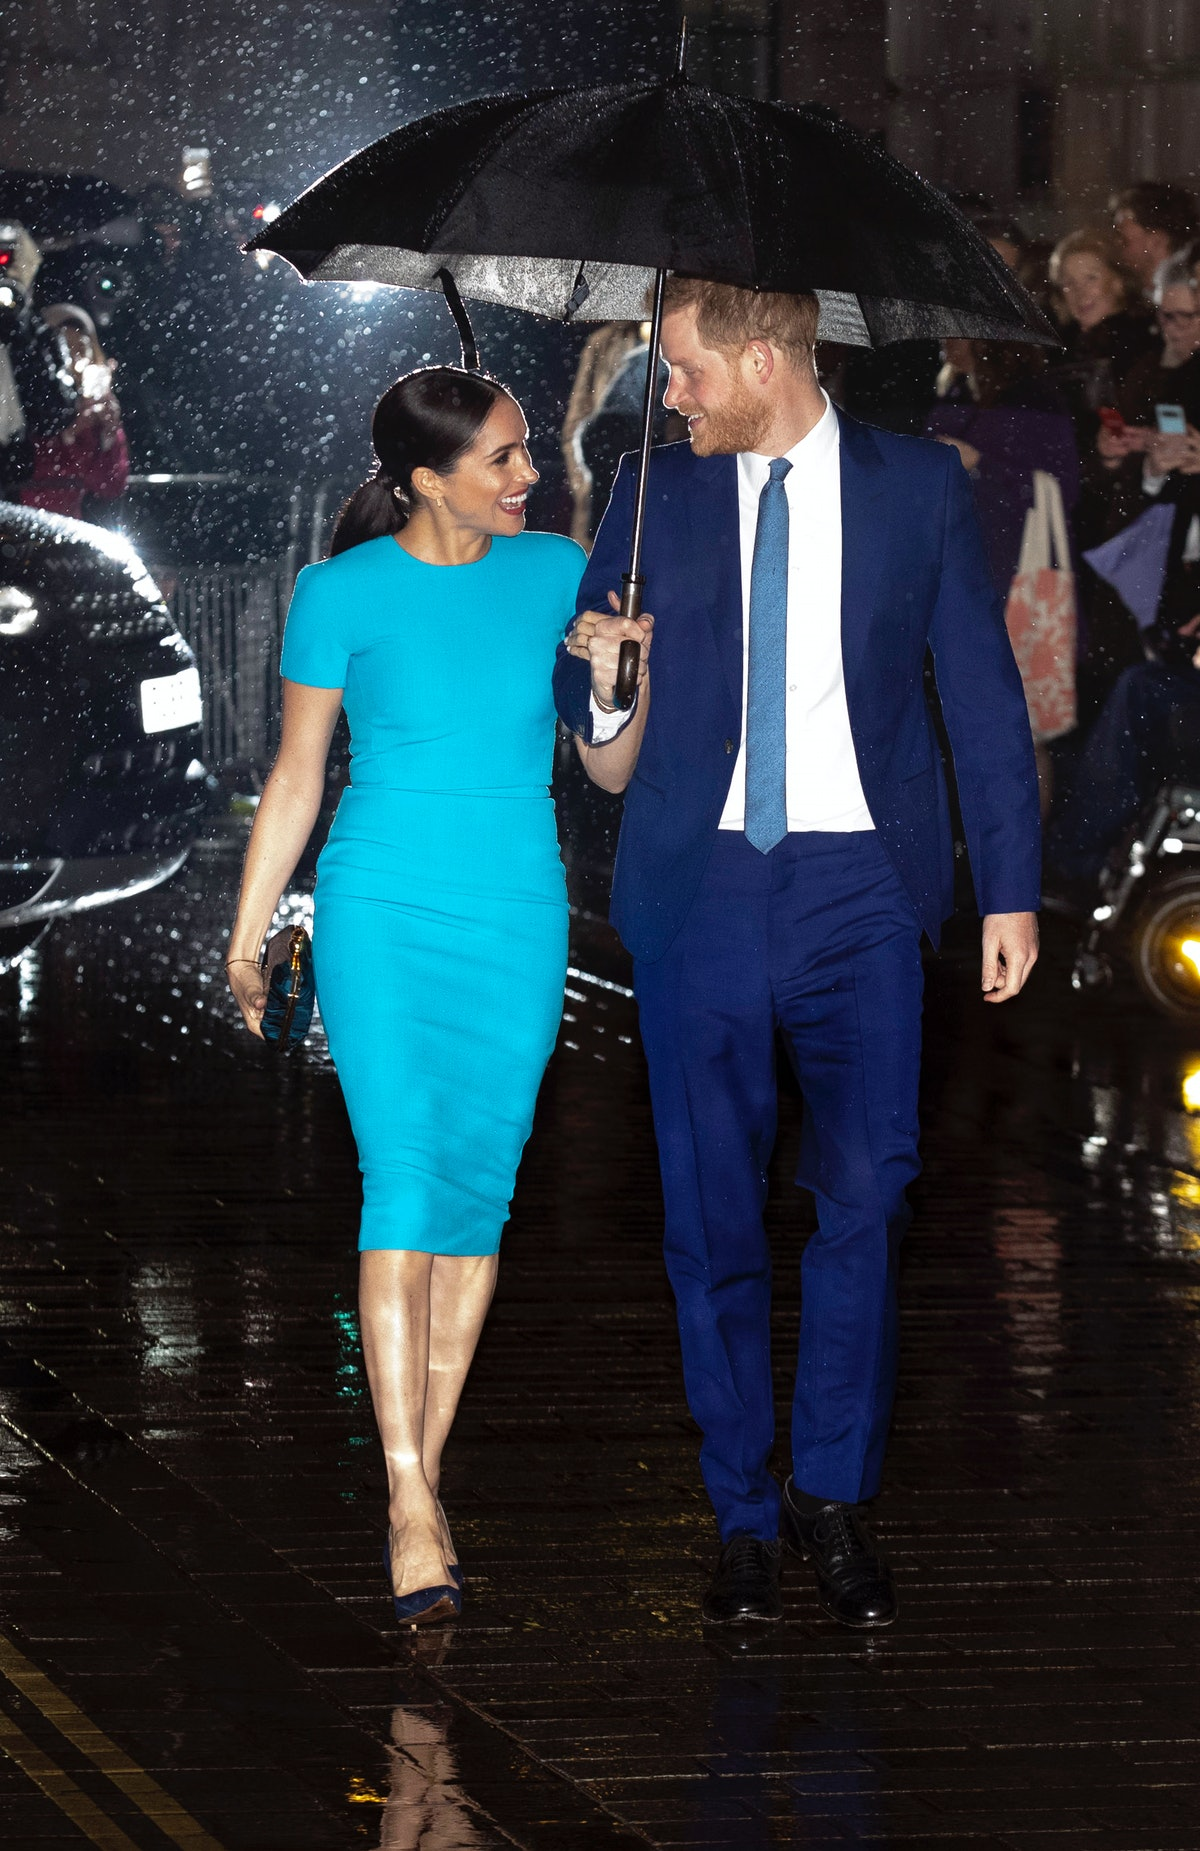 The Duke and Duchess of Sussex arrive at Mansion House in London to attend the Endeavour Fund Awards. (Photo by Steve Parsons/PA Images via Getty Images)